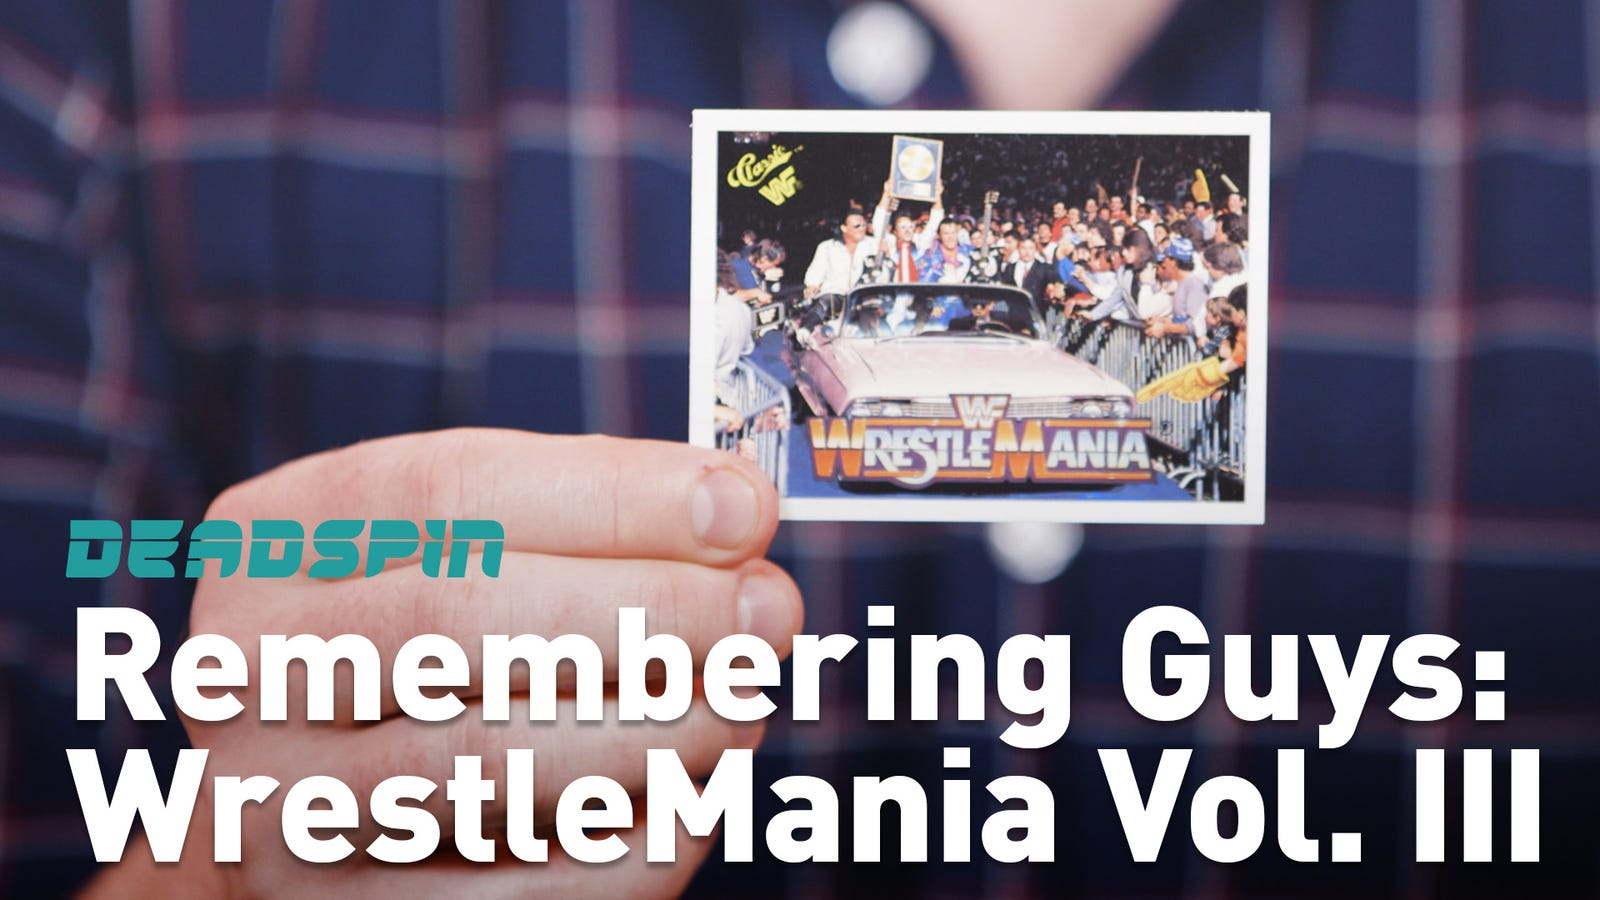 WrestleMania Legends Cards: Let's Remember Some Guys